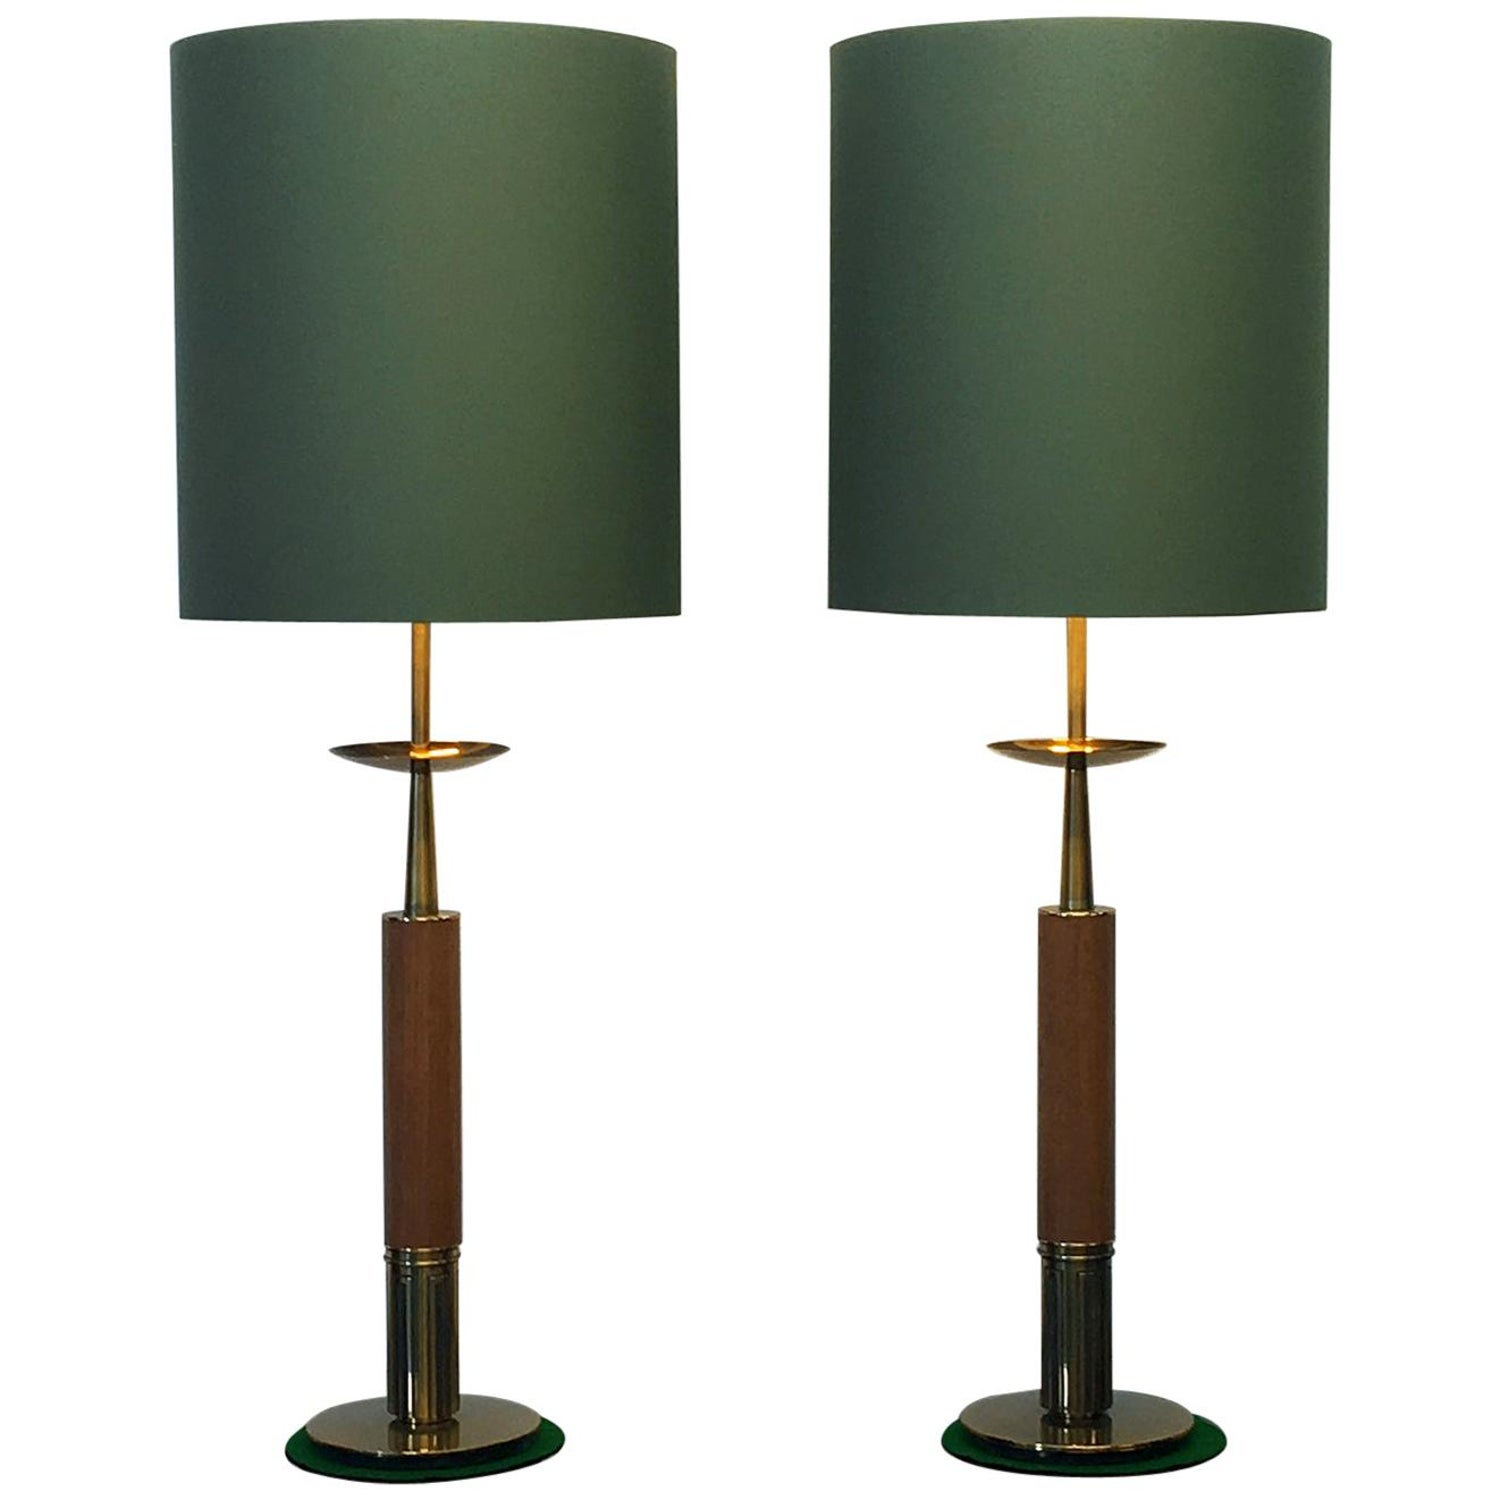 Large pair of 1960s american midcentury table lamps the stiffel lamp company for sale at 1stdibs